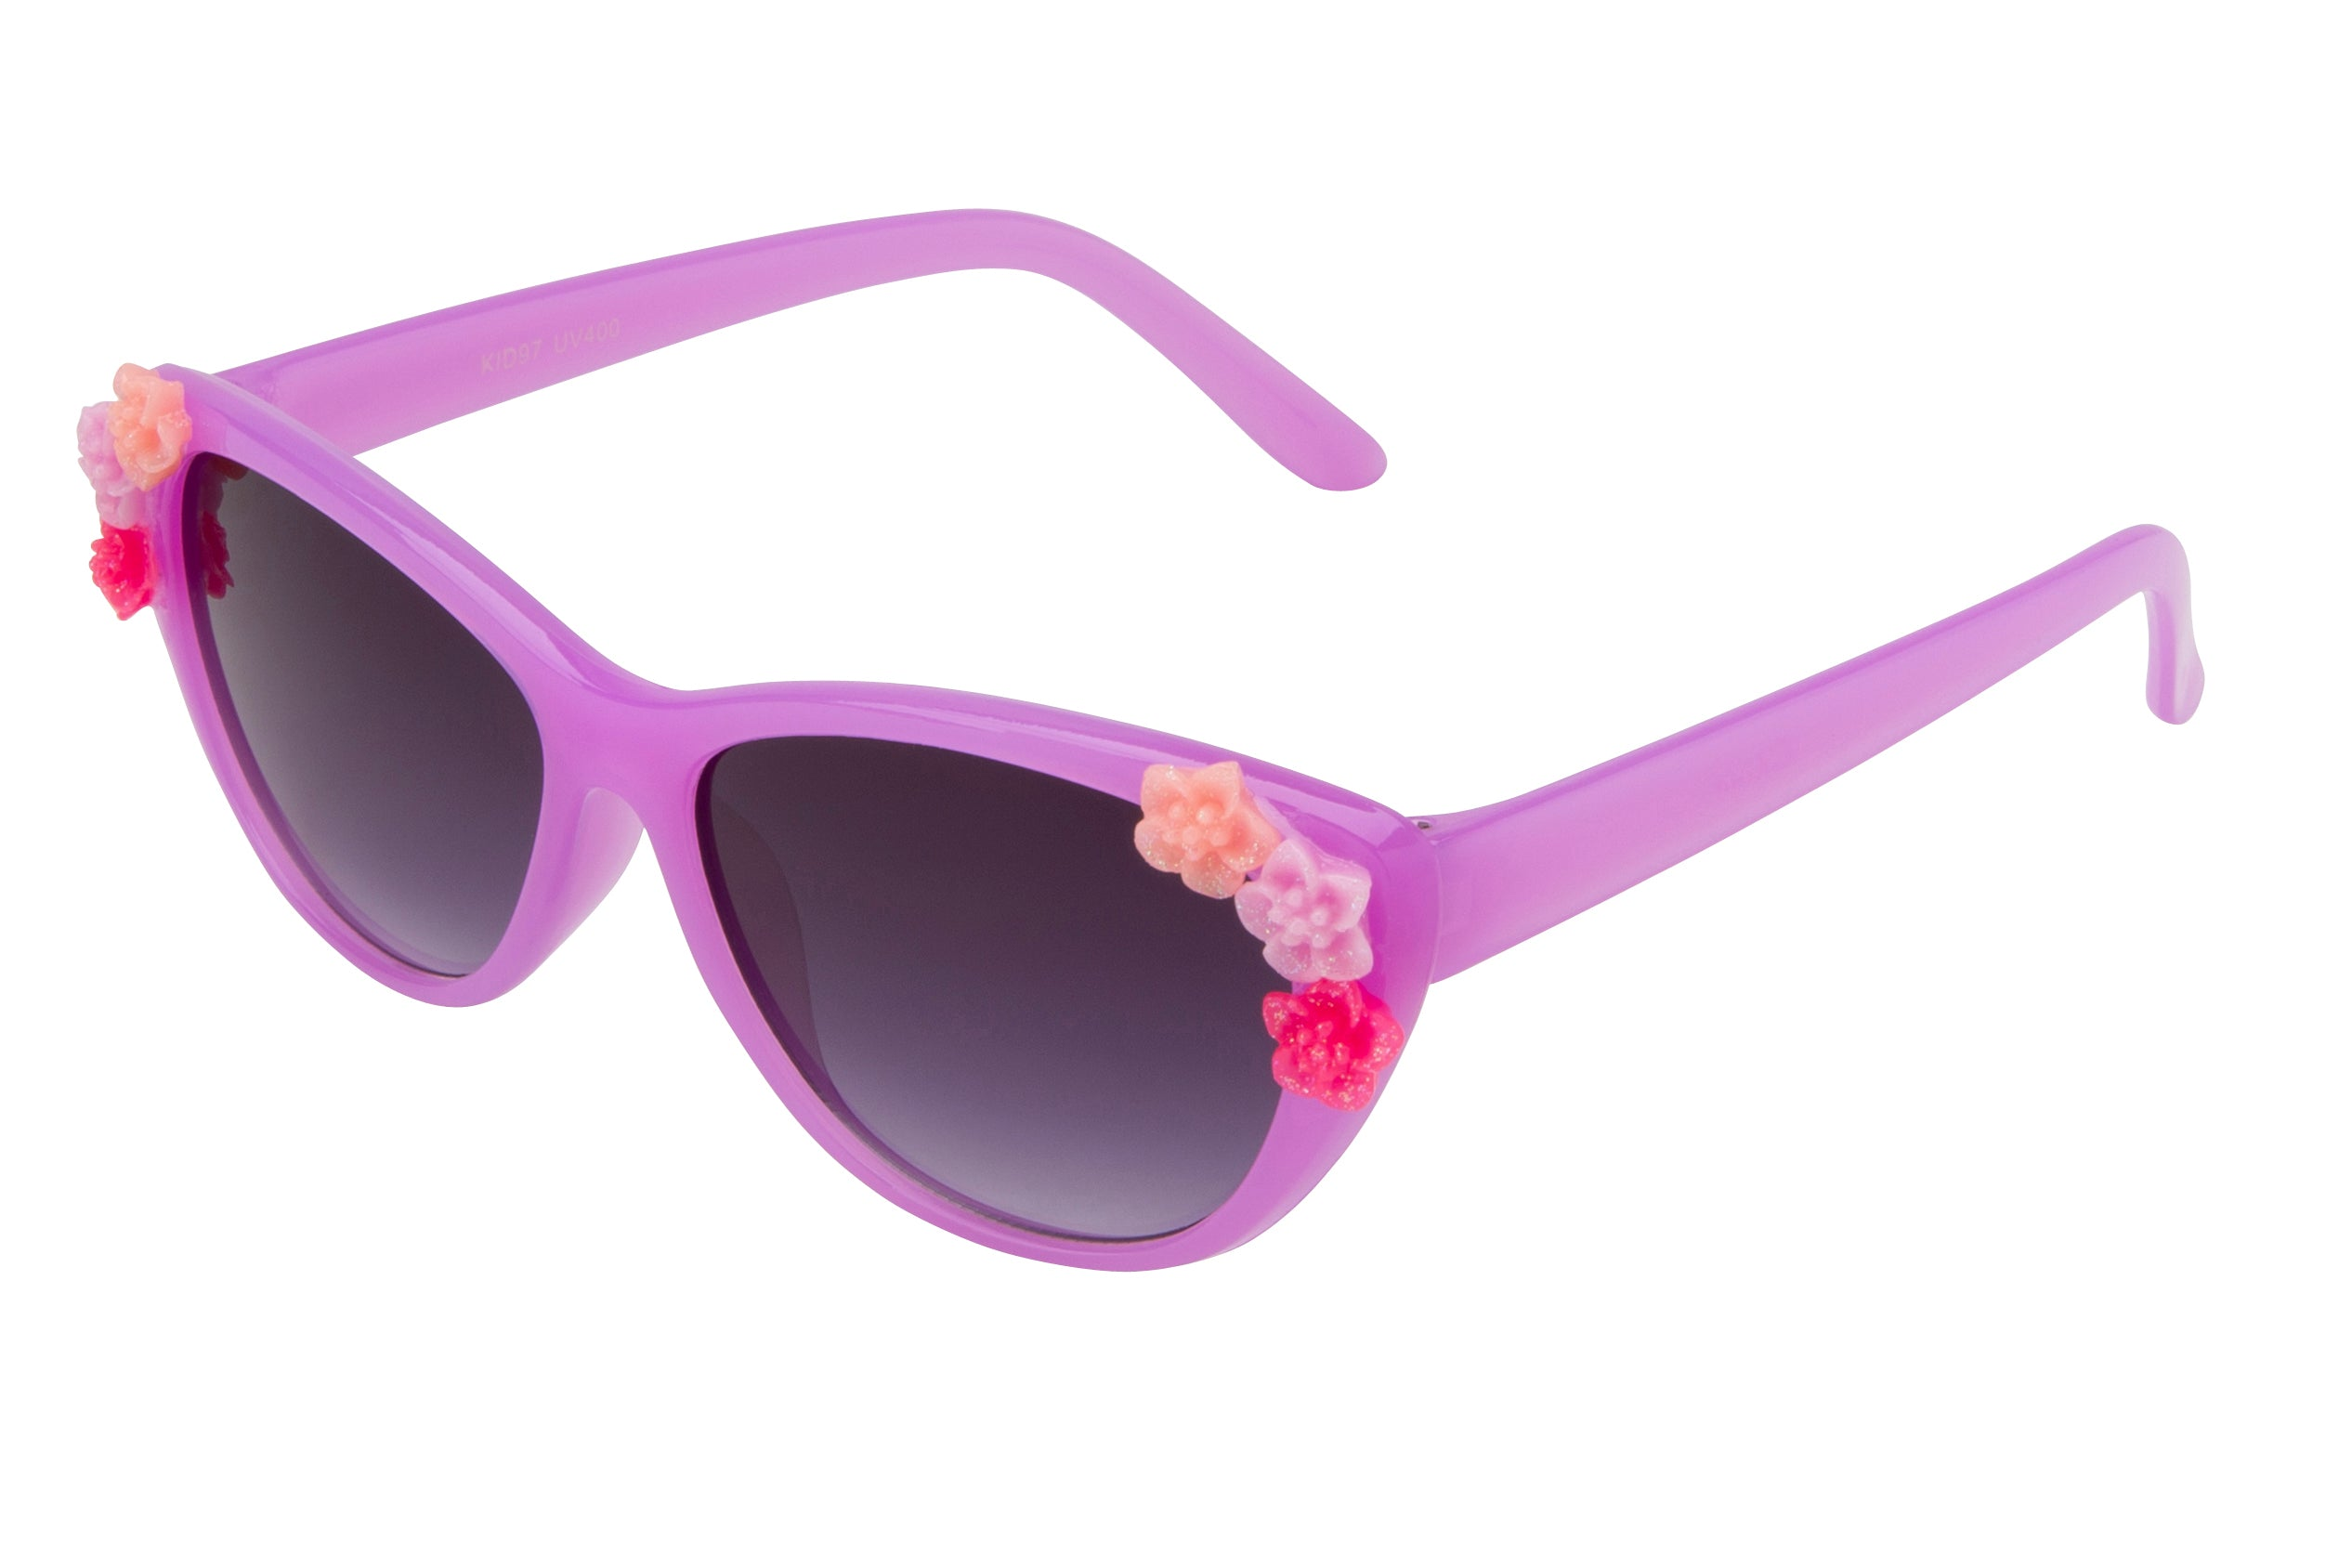 KID97- Girls Fashion Sunglasses